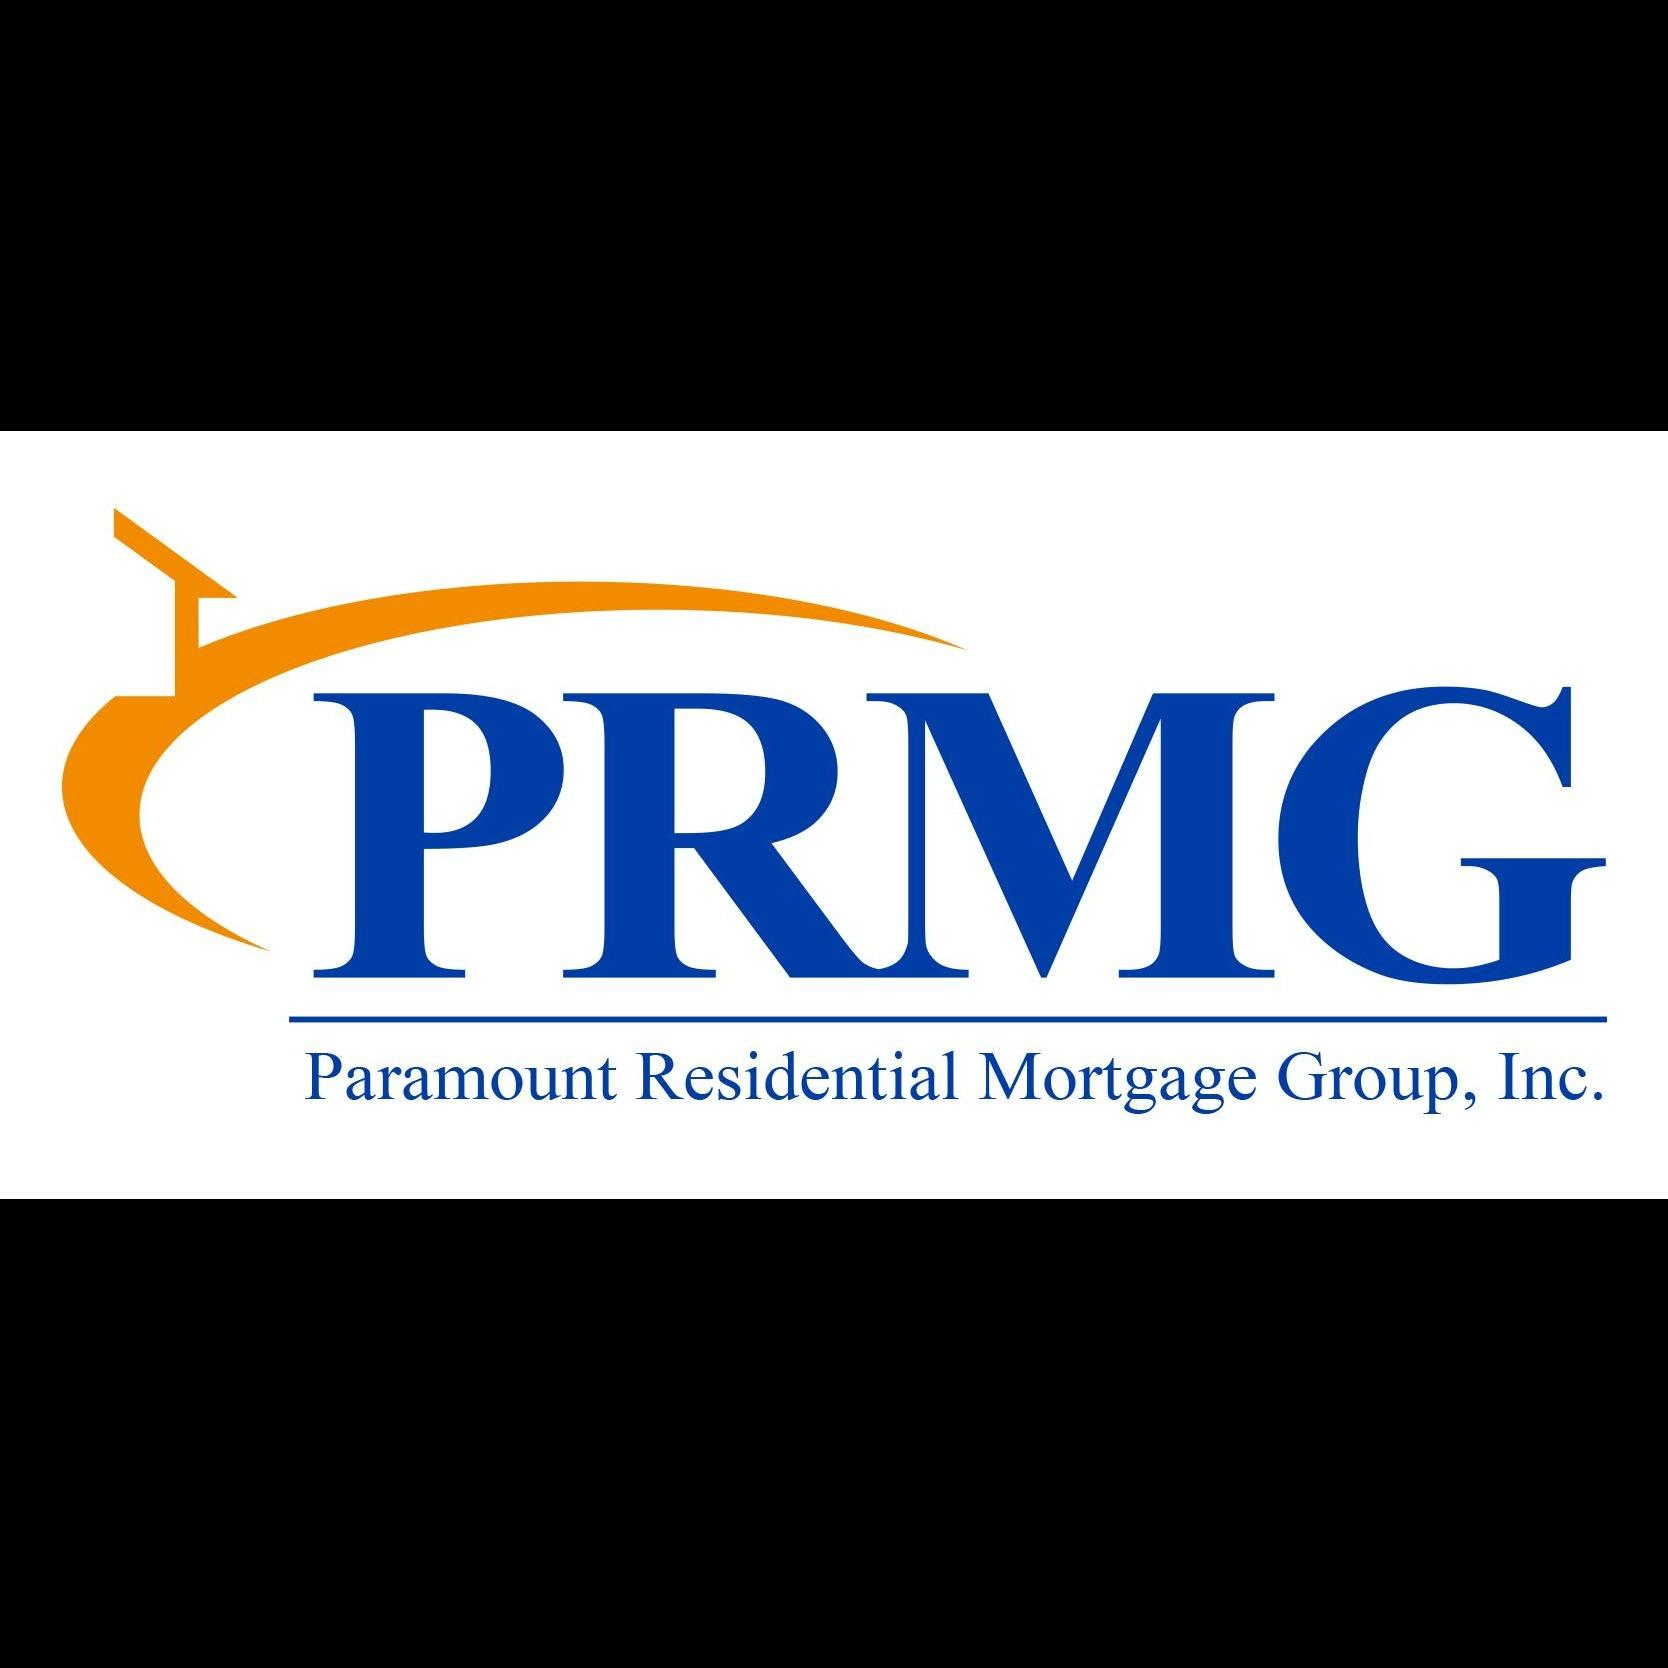 Andreas Petrou | Paramount Residential Mortgage Group, Inc. - San Diego, CA - Mortgage Brokers & Lenders